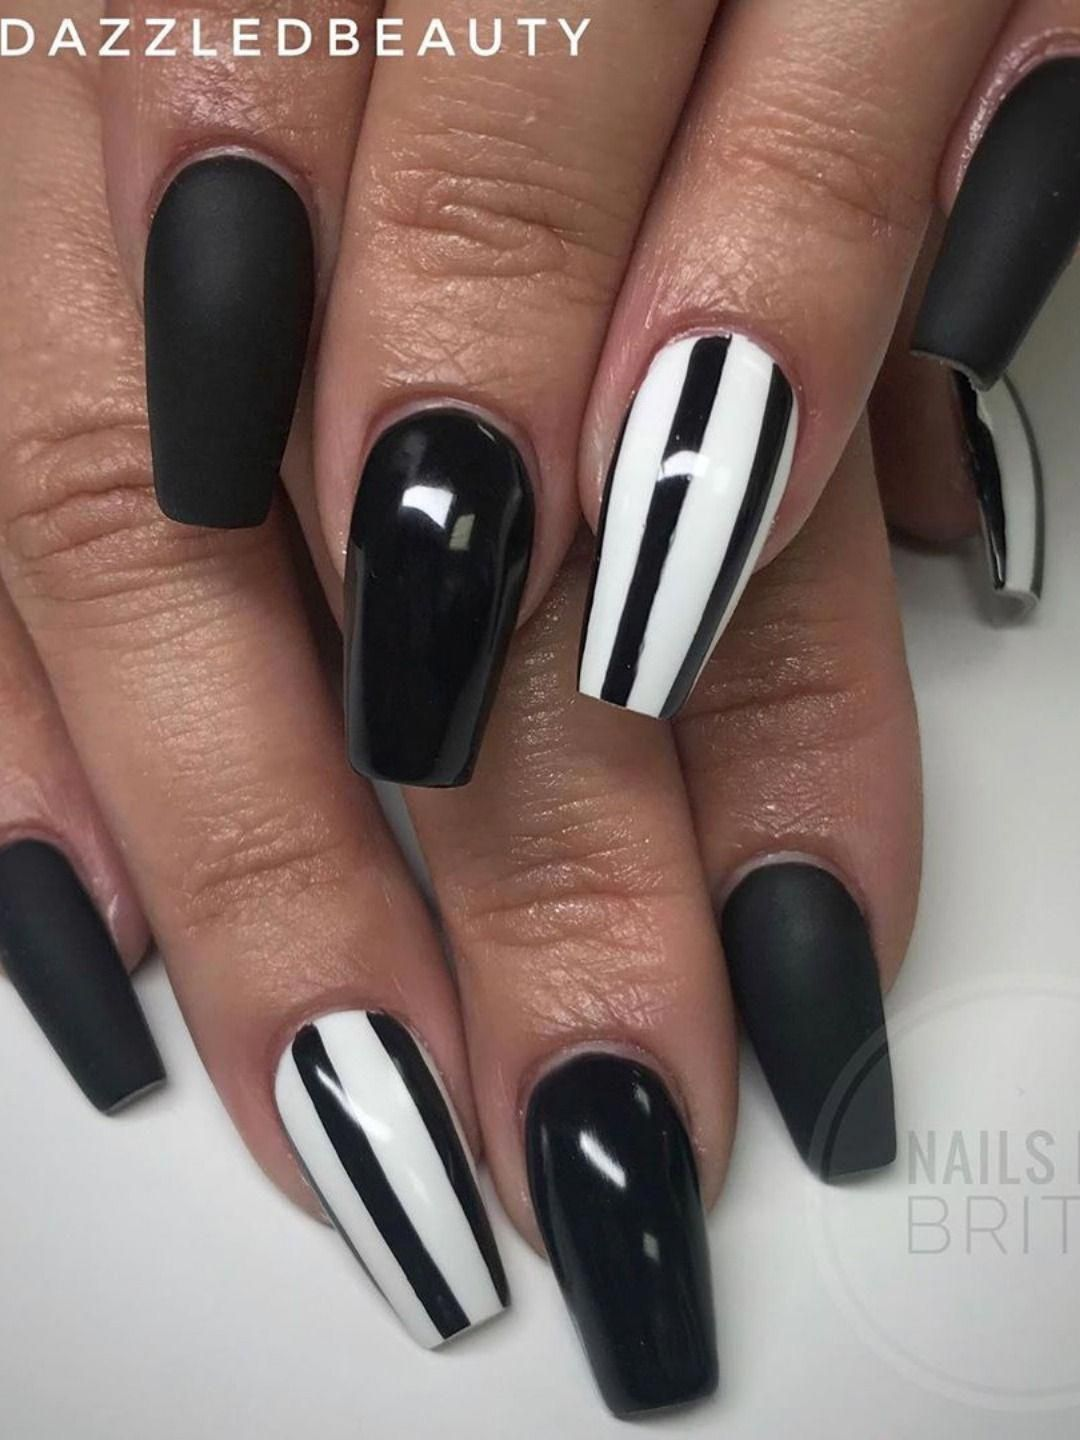 Beautiful Nail Art Design Consists Of Matte Black Coffin Nails Shiny Black Coffin Nails With An Acc White And Silver Nails Black Nail Designs White Tip Nails